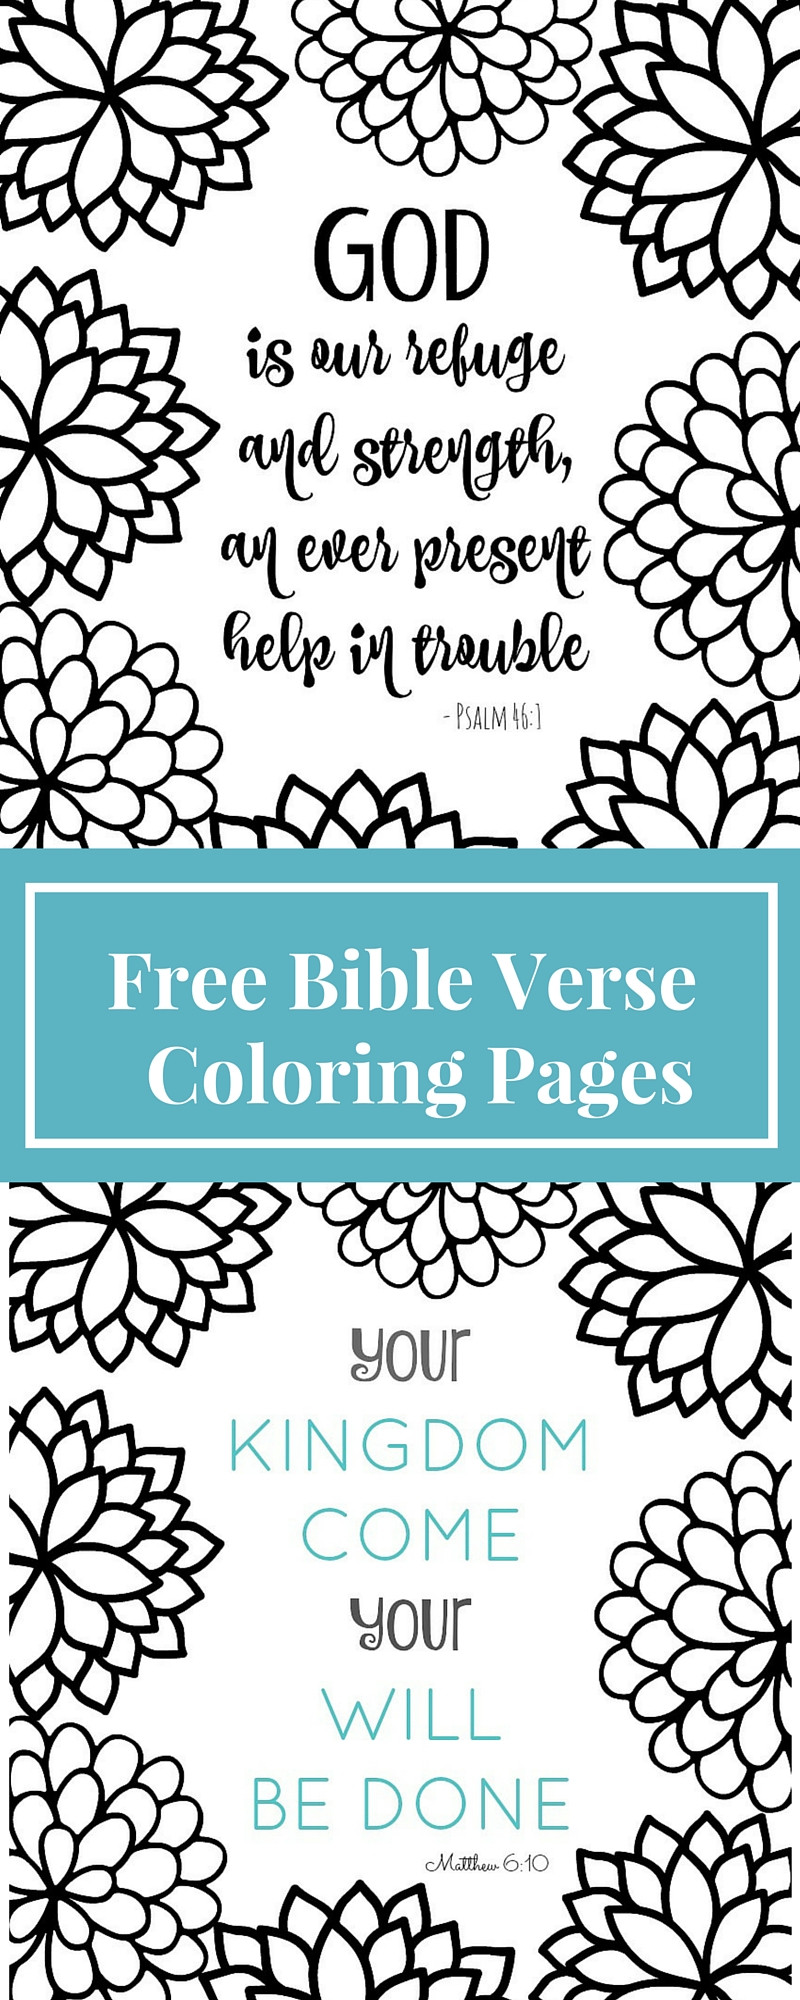 Coloring Book Pages Bible  Free Printable Bible Verse Coloring Pages with Bursting